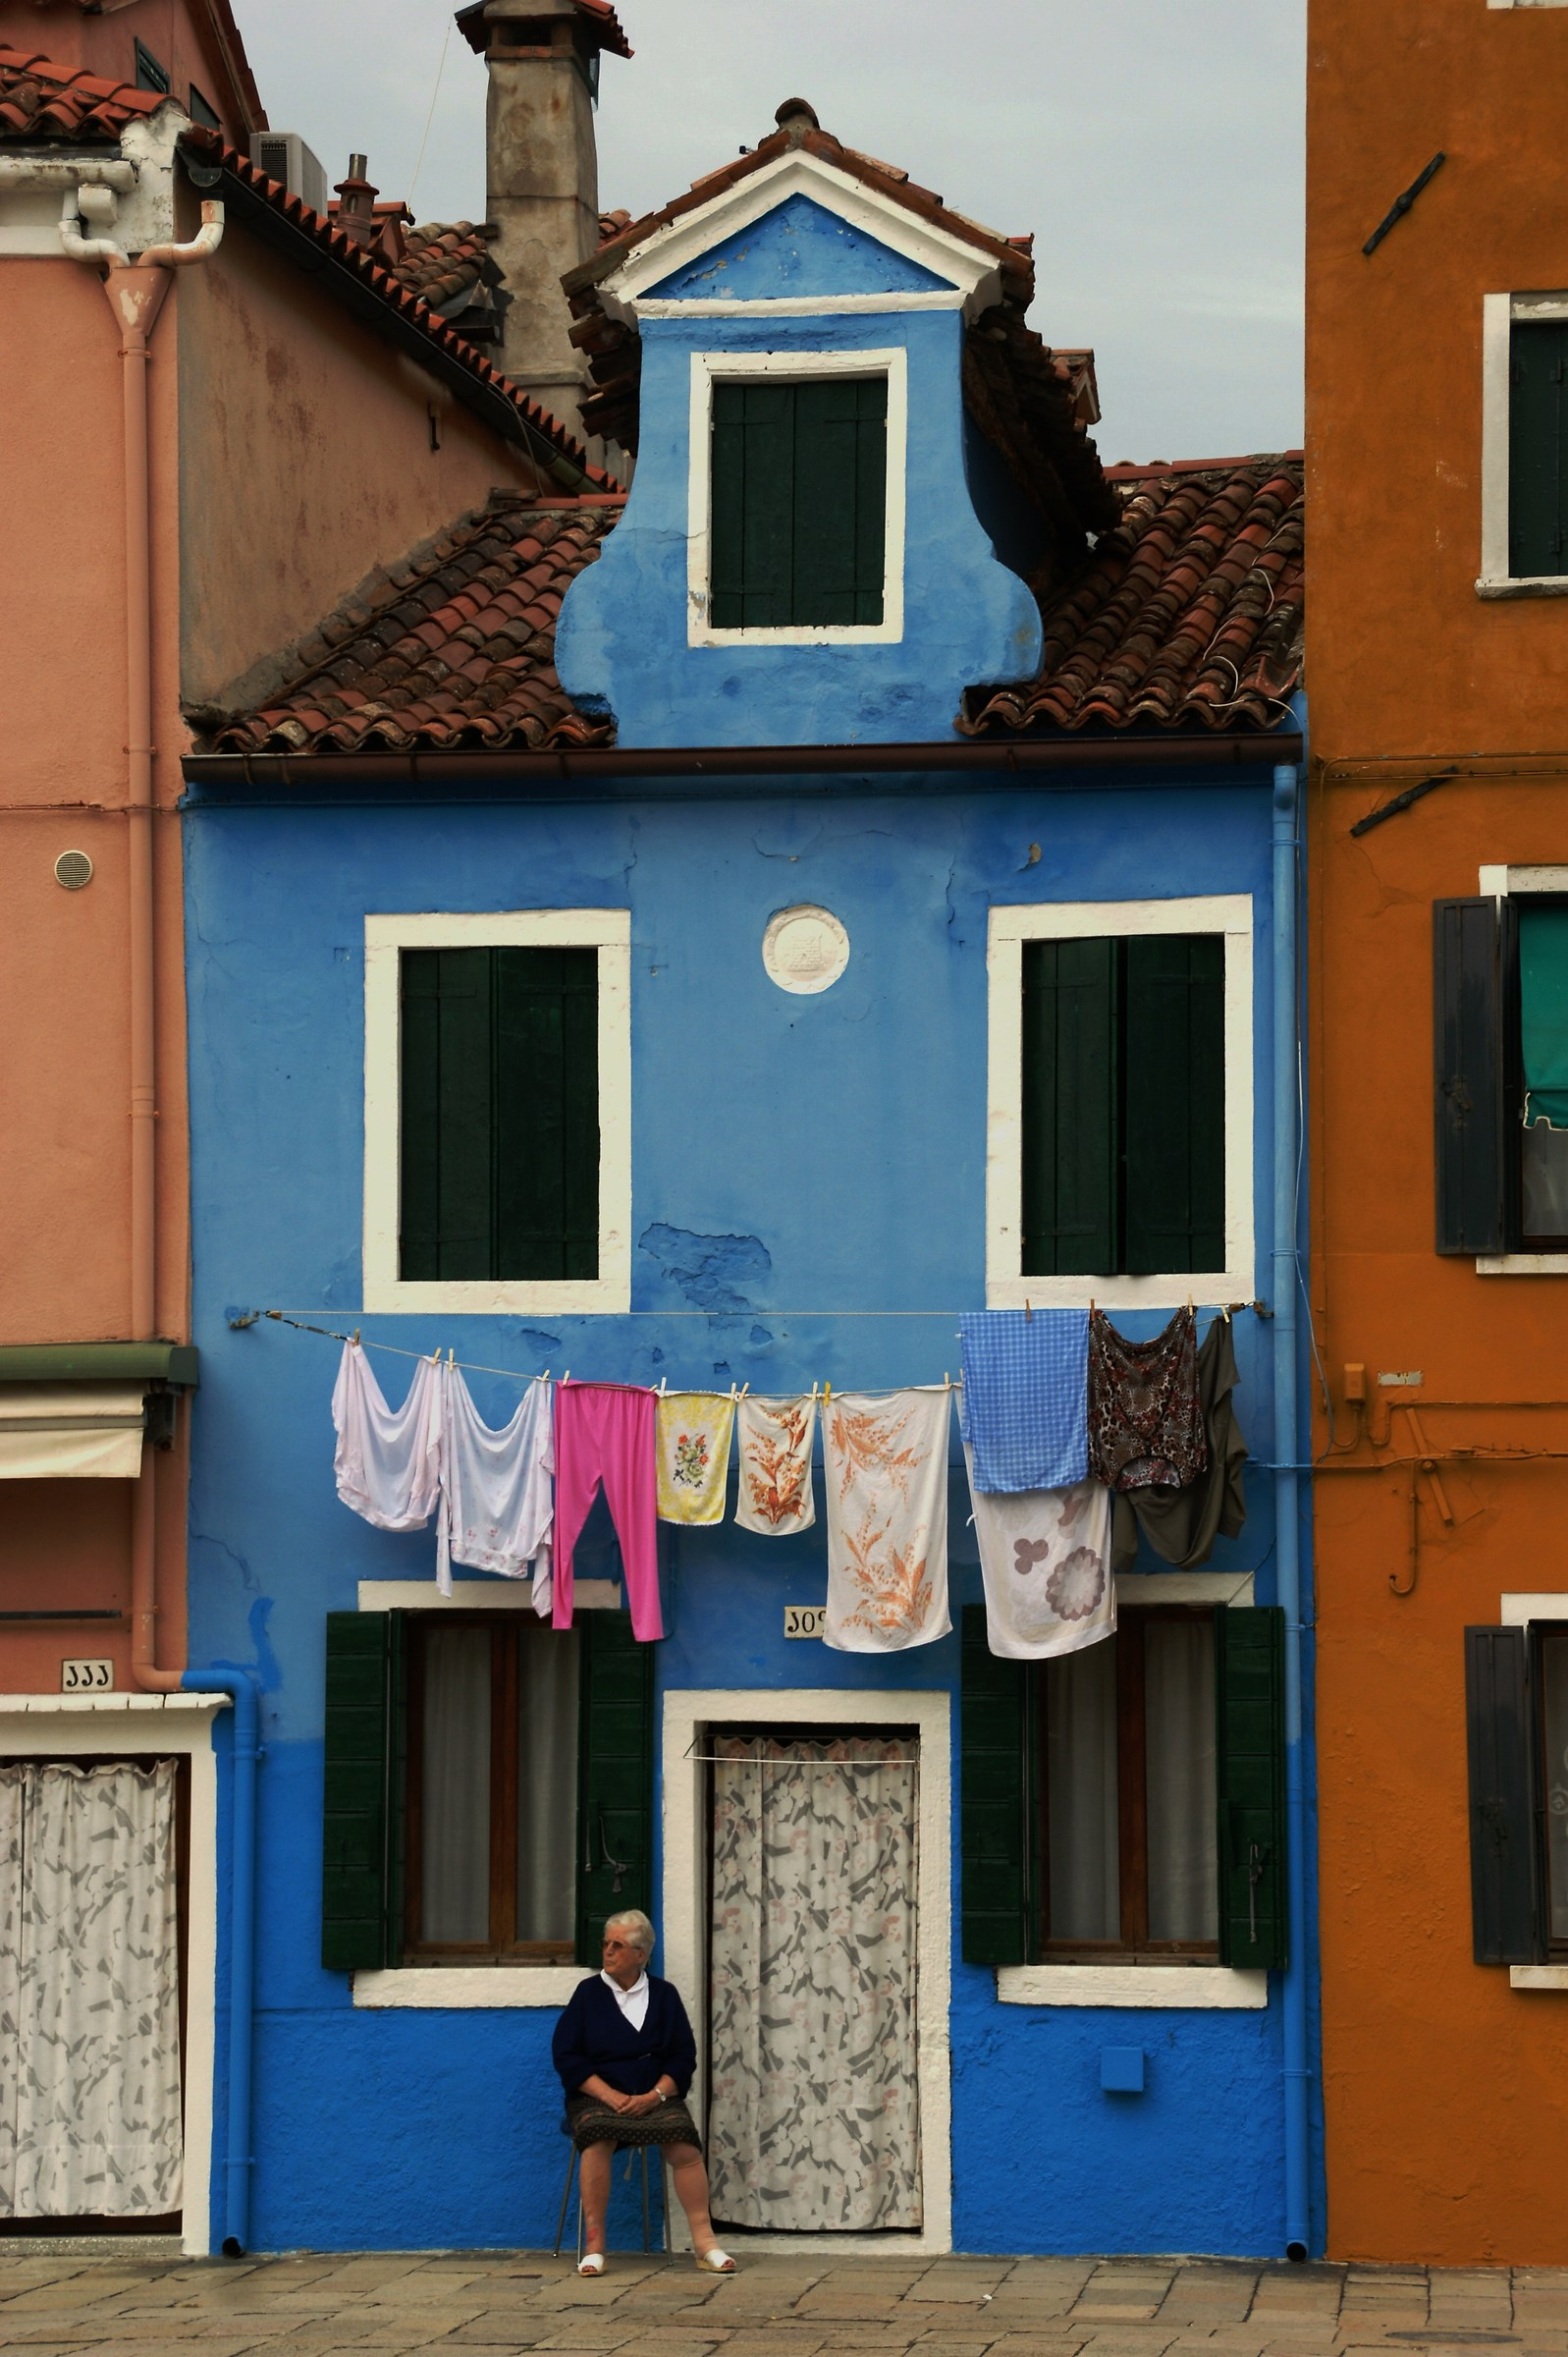 The lady from Burano...